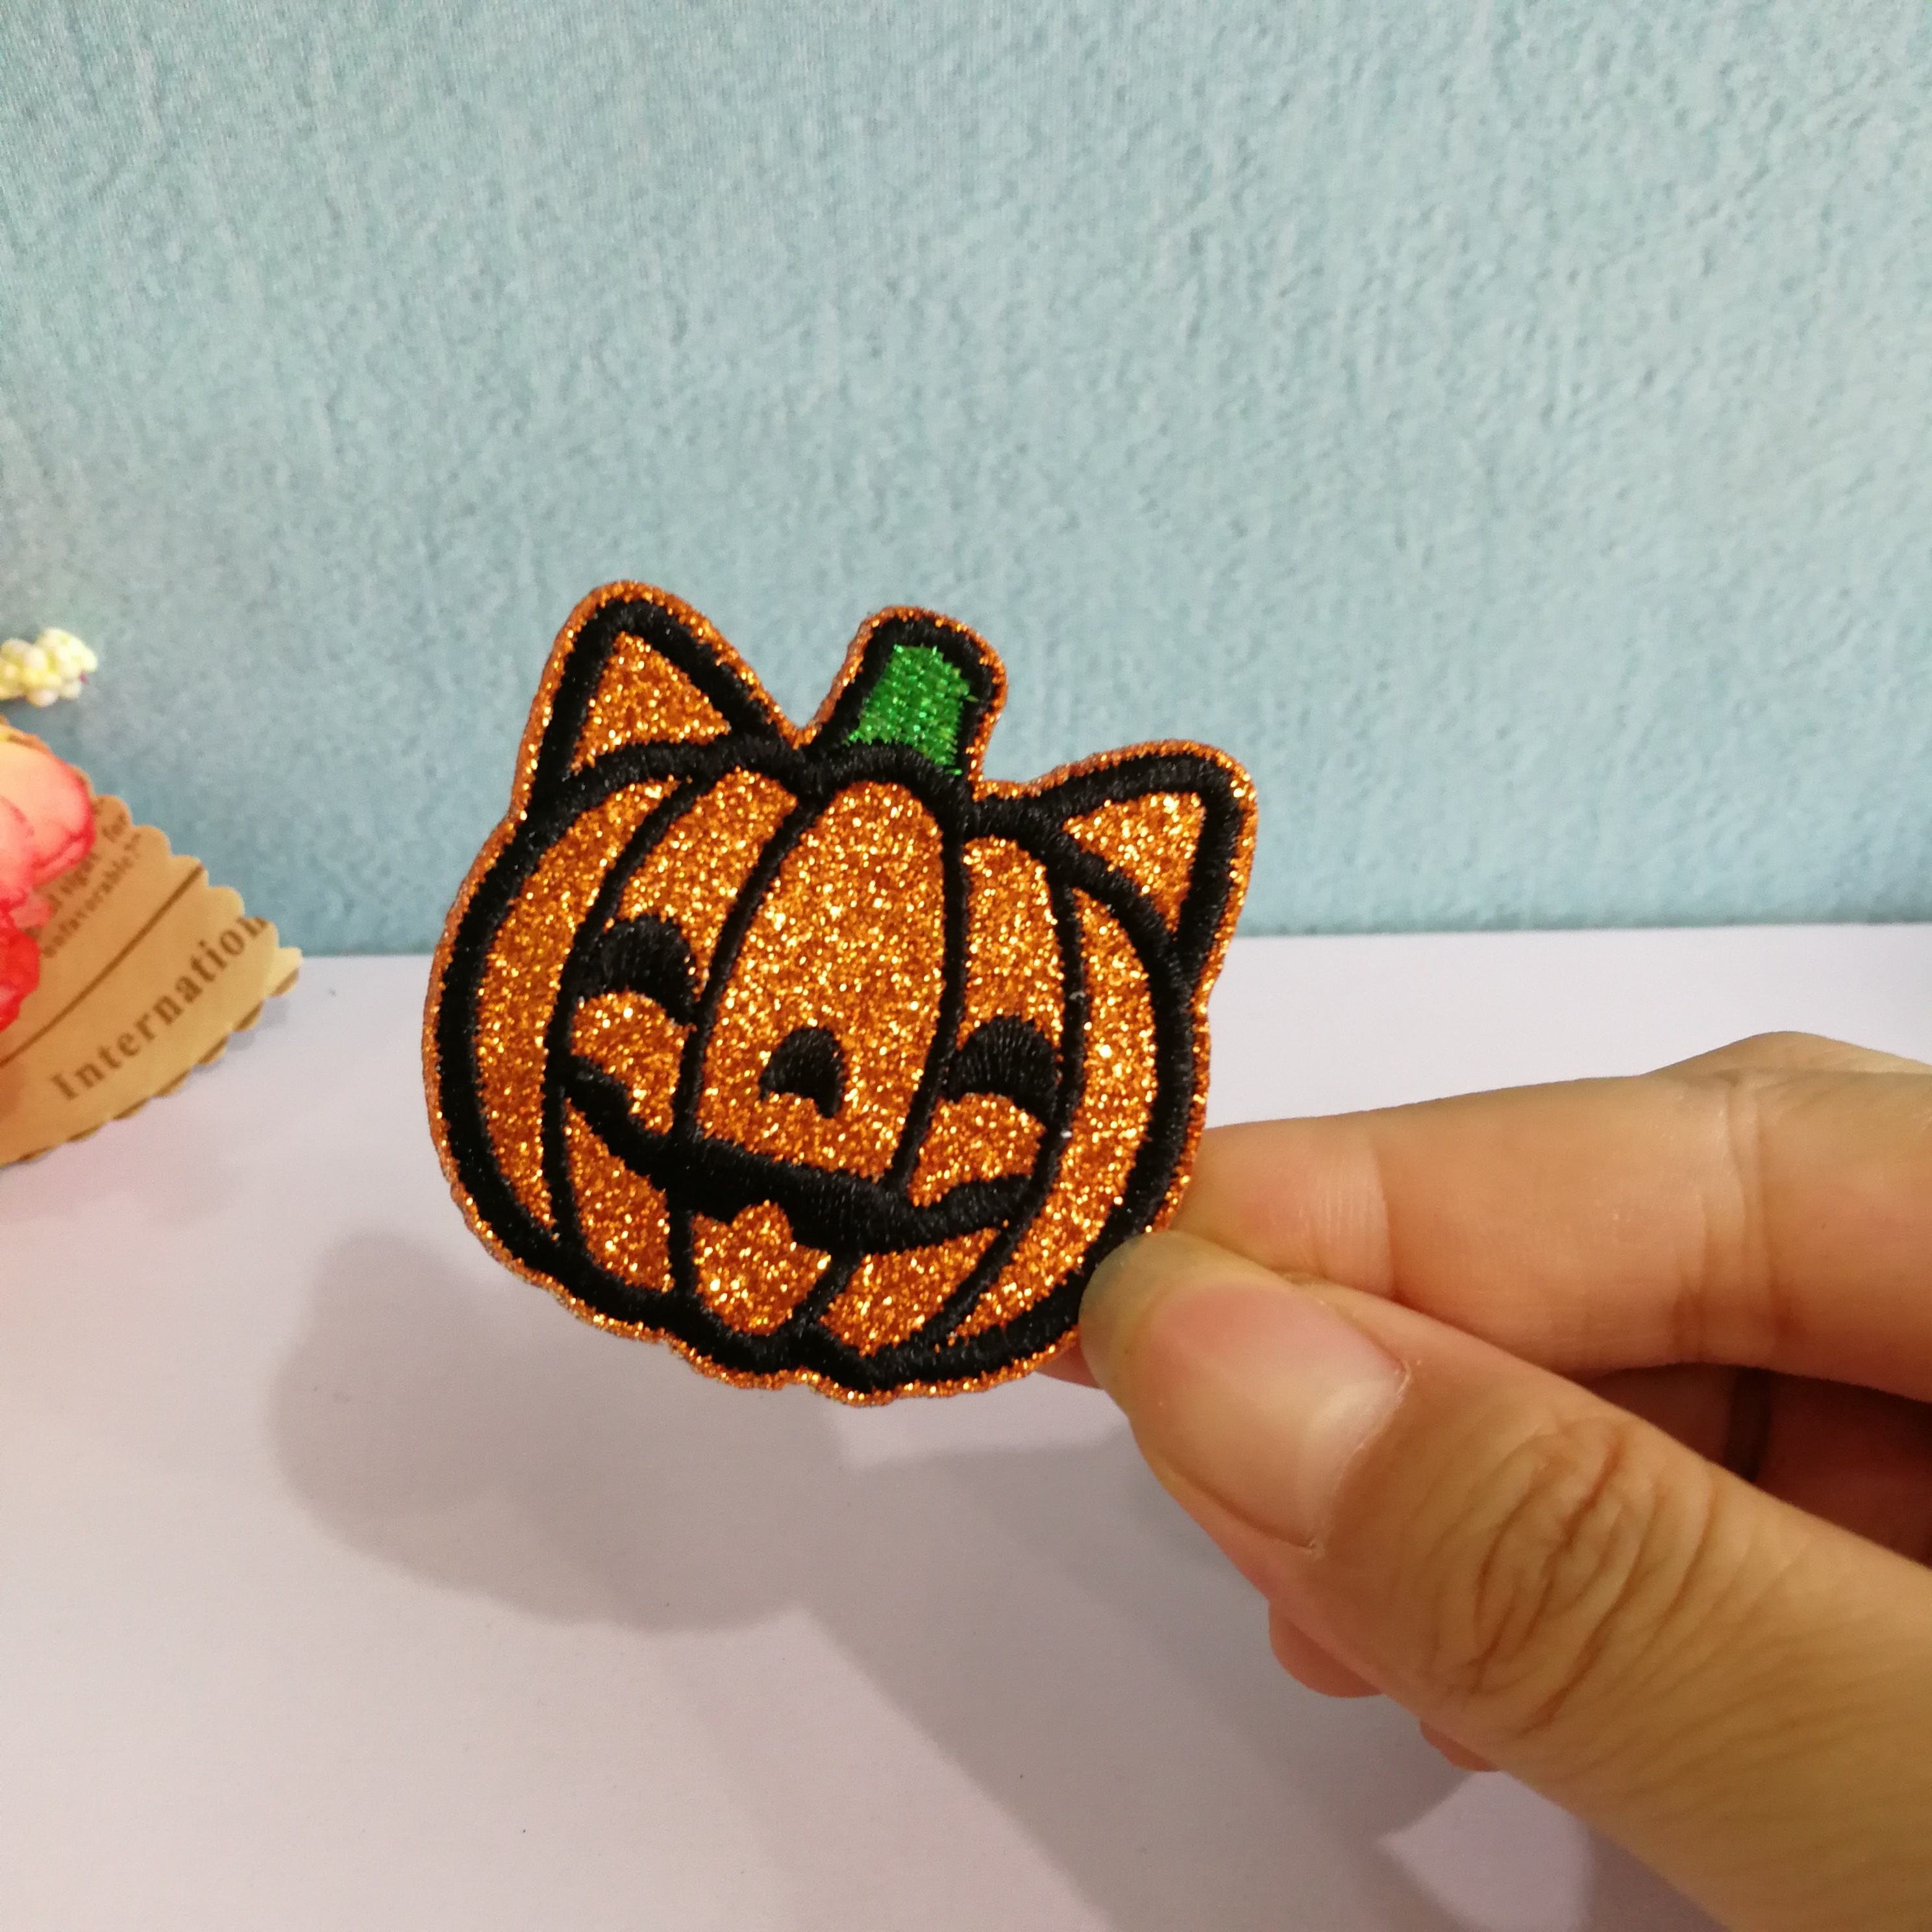 Glitter patch pumpkin patches embroidery patches custom patches for clothing custom embroidery patch for t shirts , hats , shoes